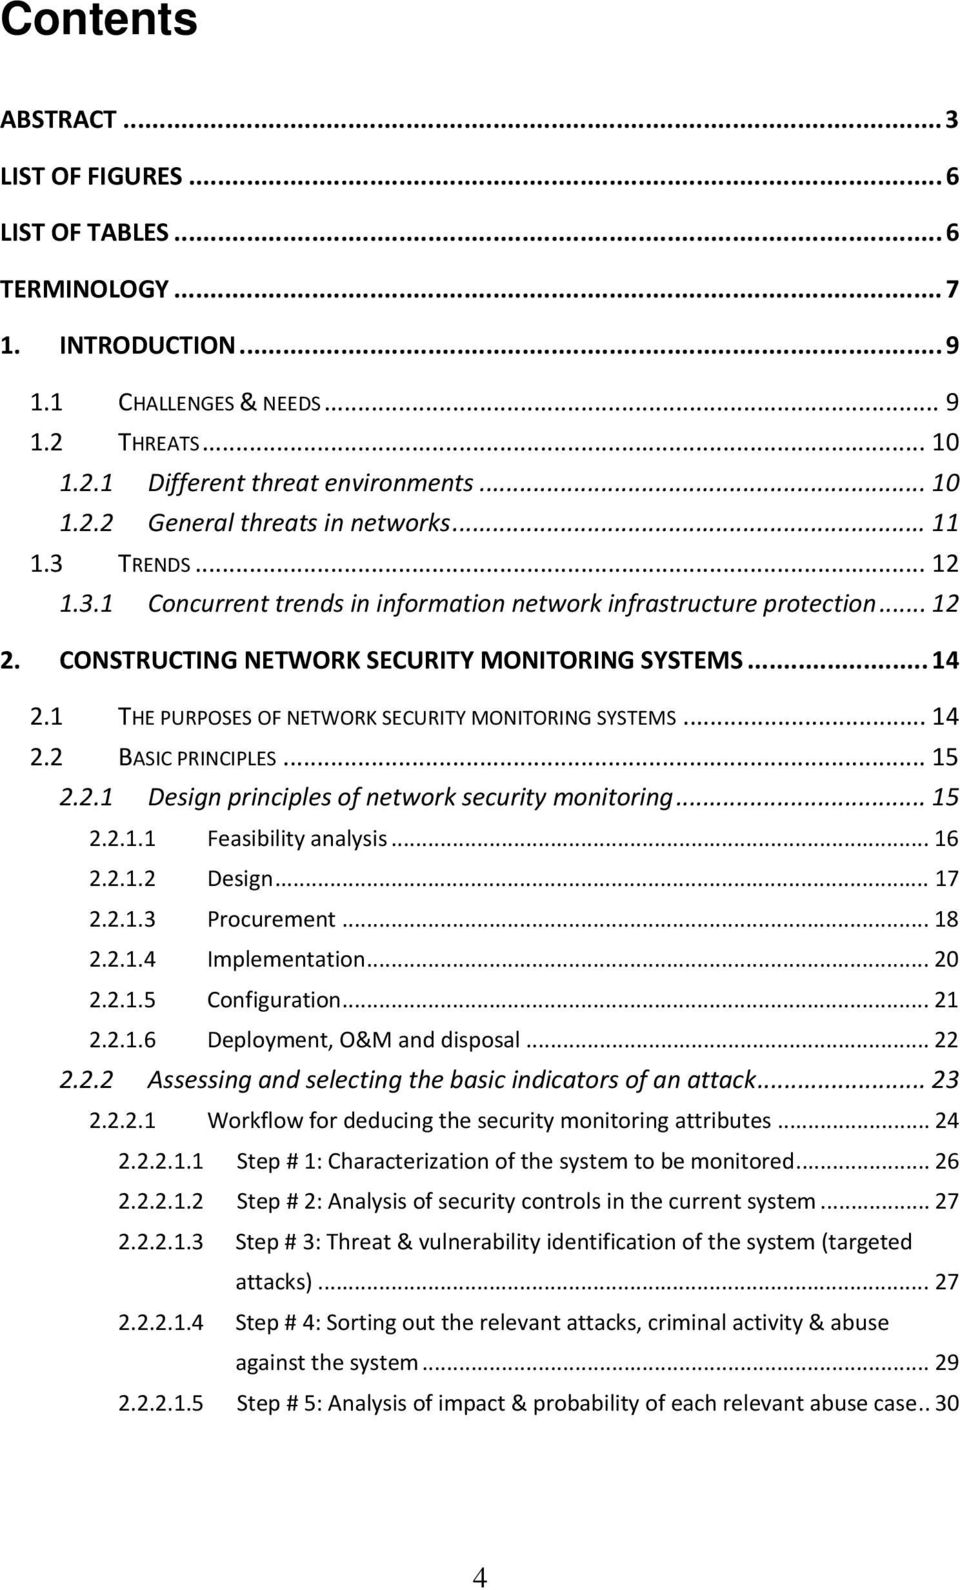 1 THE PURPOSES OF NETWORK SECURITY MONITORING SYSTEMS... 14 2.2 BASIC PRINCIPLES... 15 2.2.1 Design principles of network security monitoring... 15 2.2.1.1 Feasibility analysis... 16 2.2.1.2 Design.